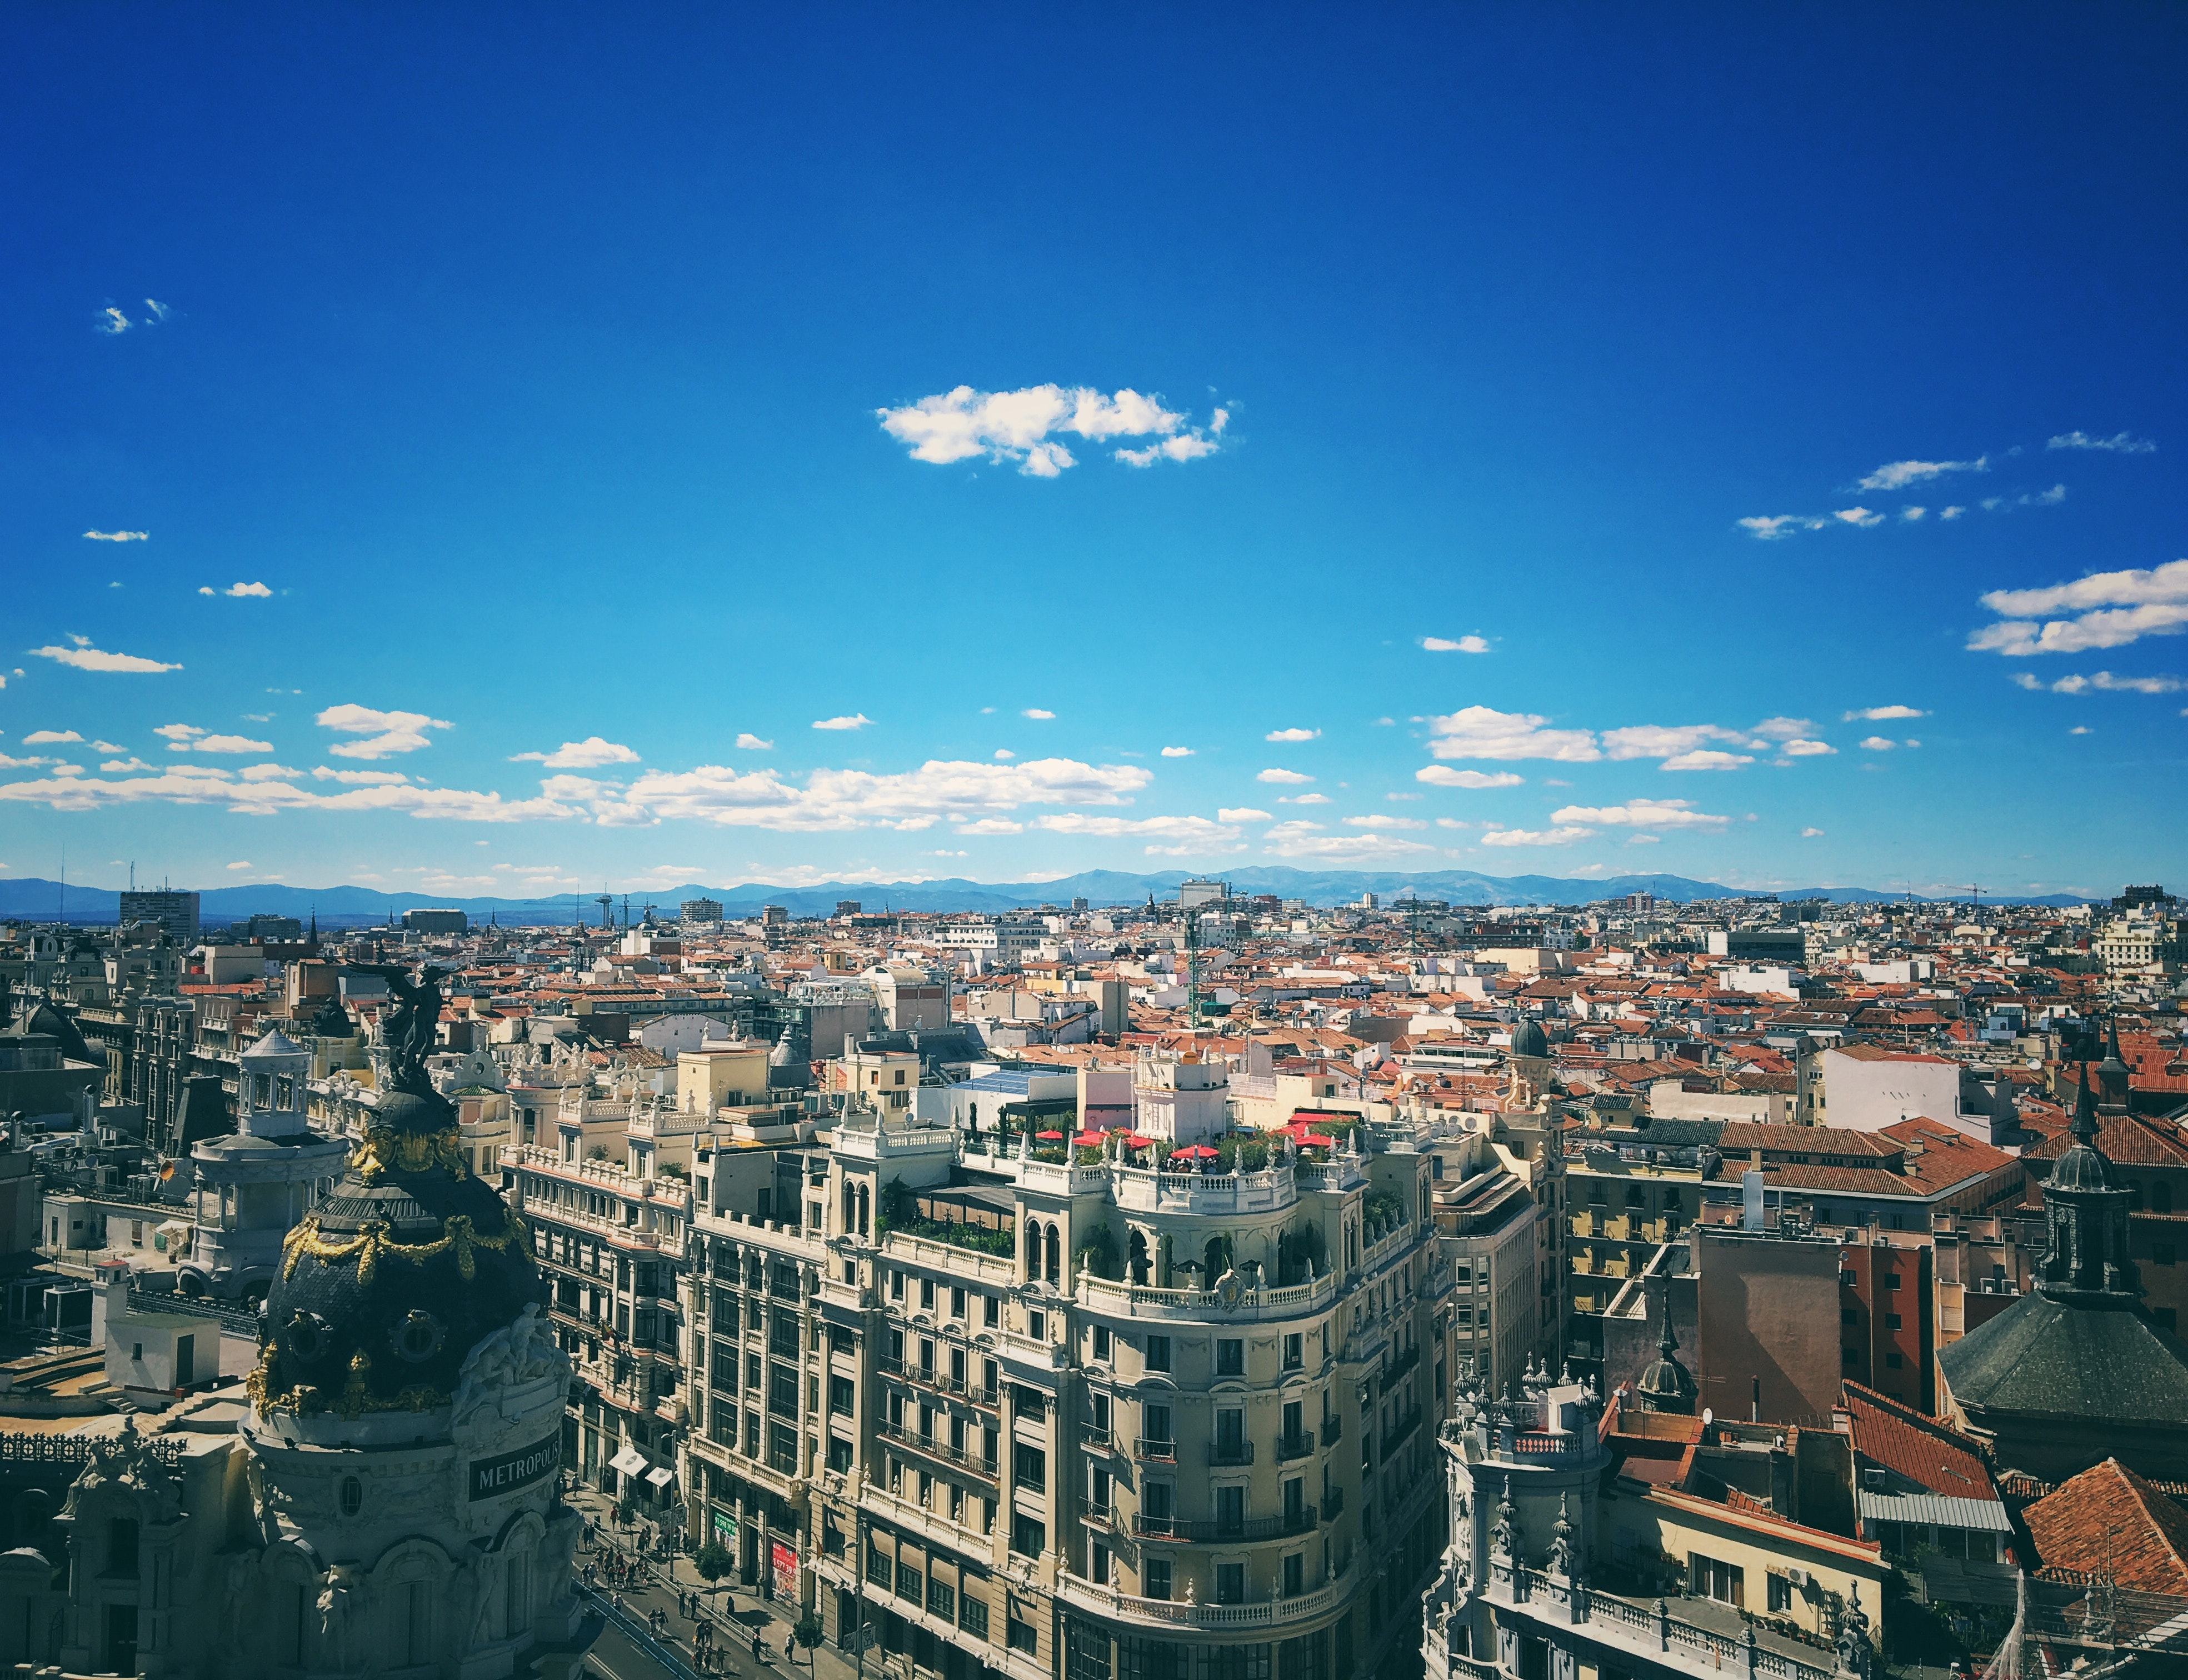 Day 1: Madrid, Spain Itinerary